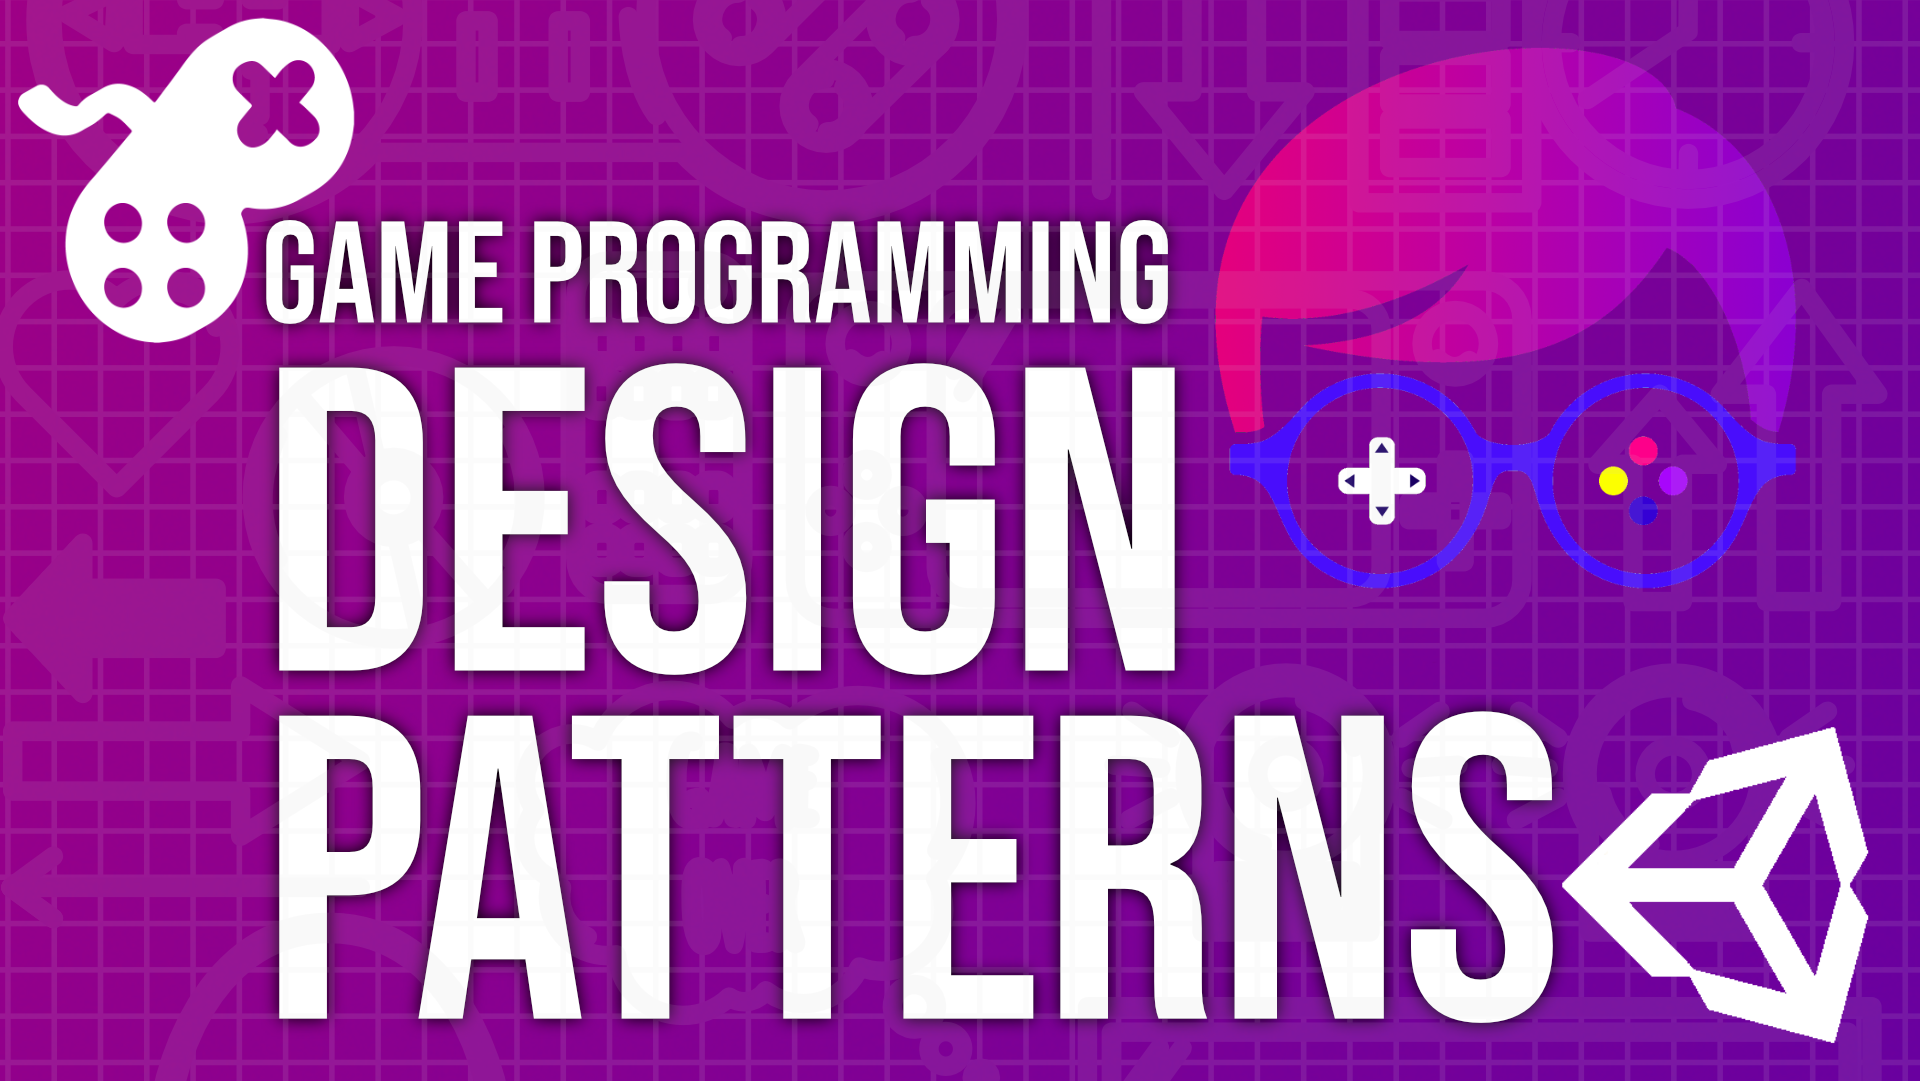 Design Patterns for Game Programming